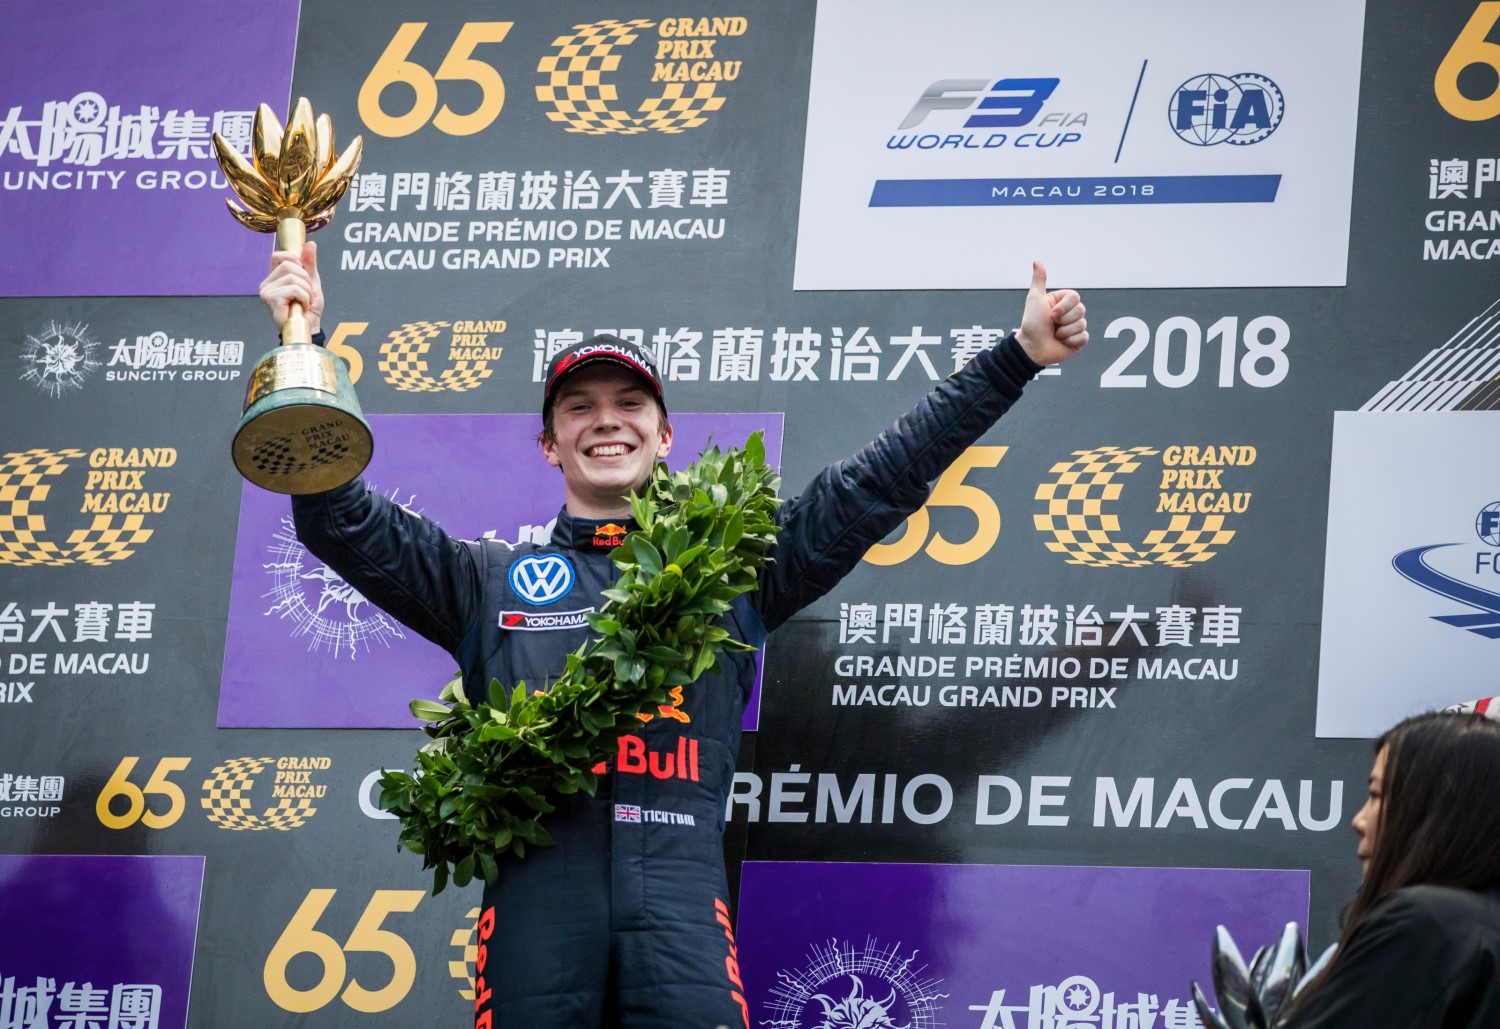 Two in a row at Macau for Ticktum